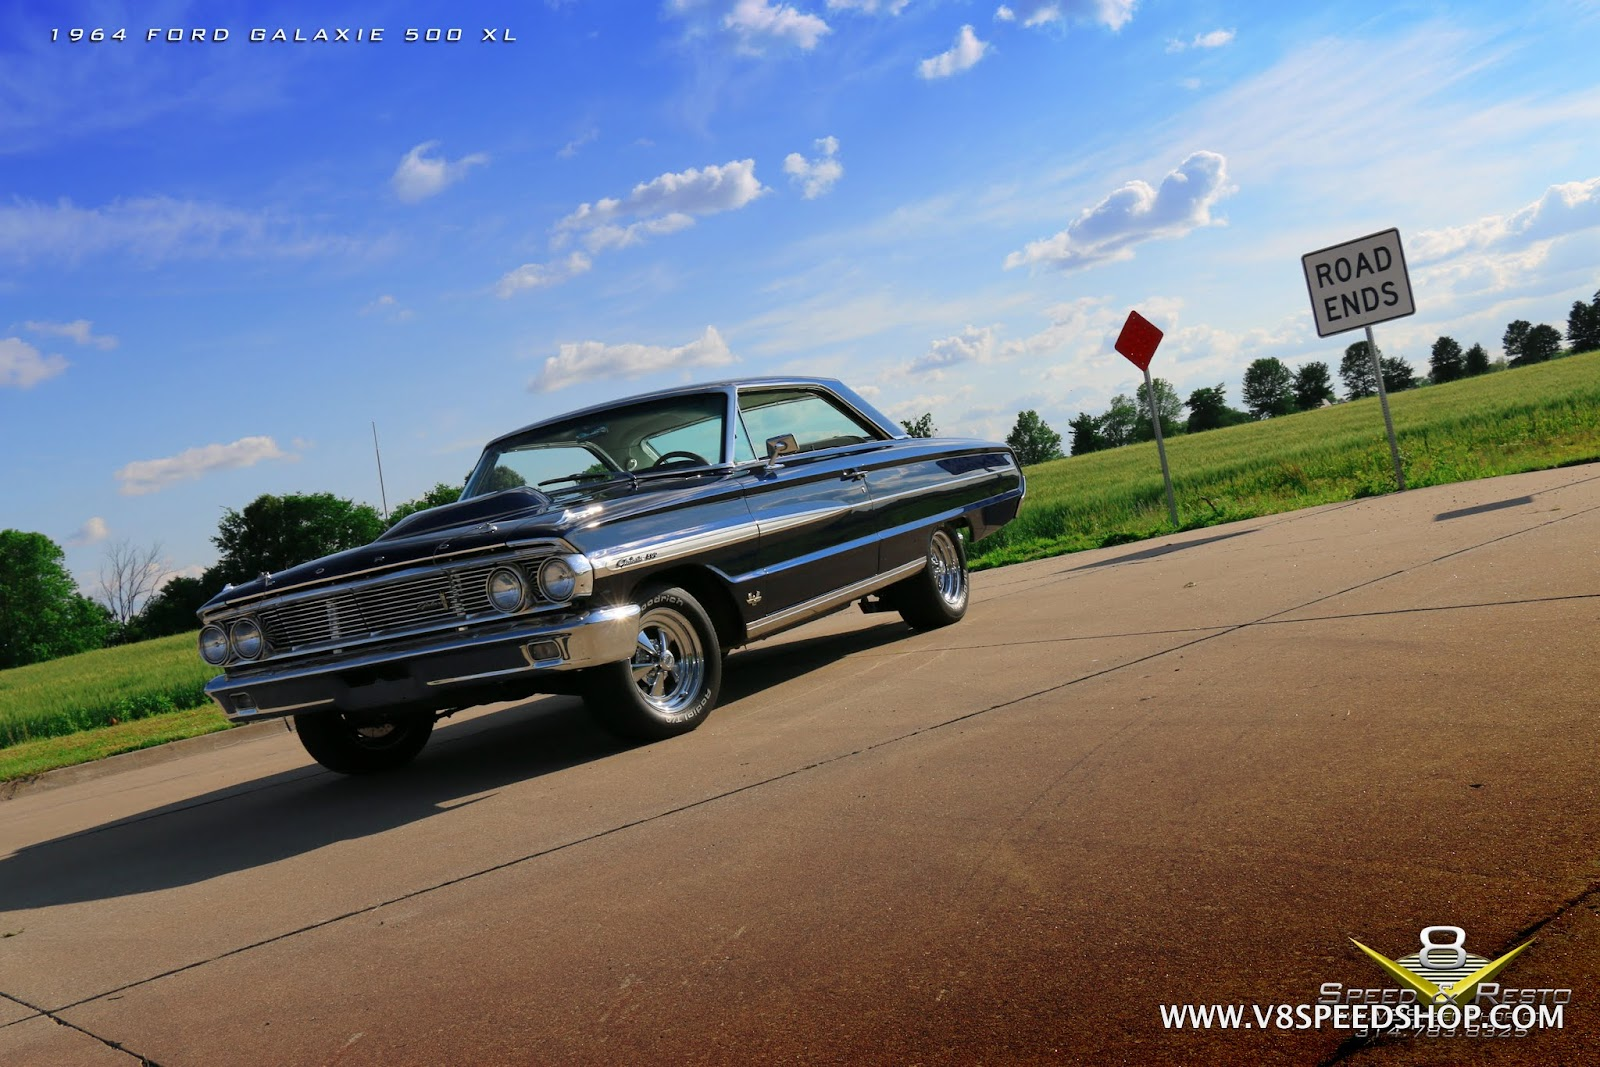 1964 Ford Galaxie 500 XL Bodywork And Paint At V8 Speed & Resto Shop